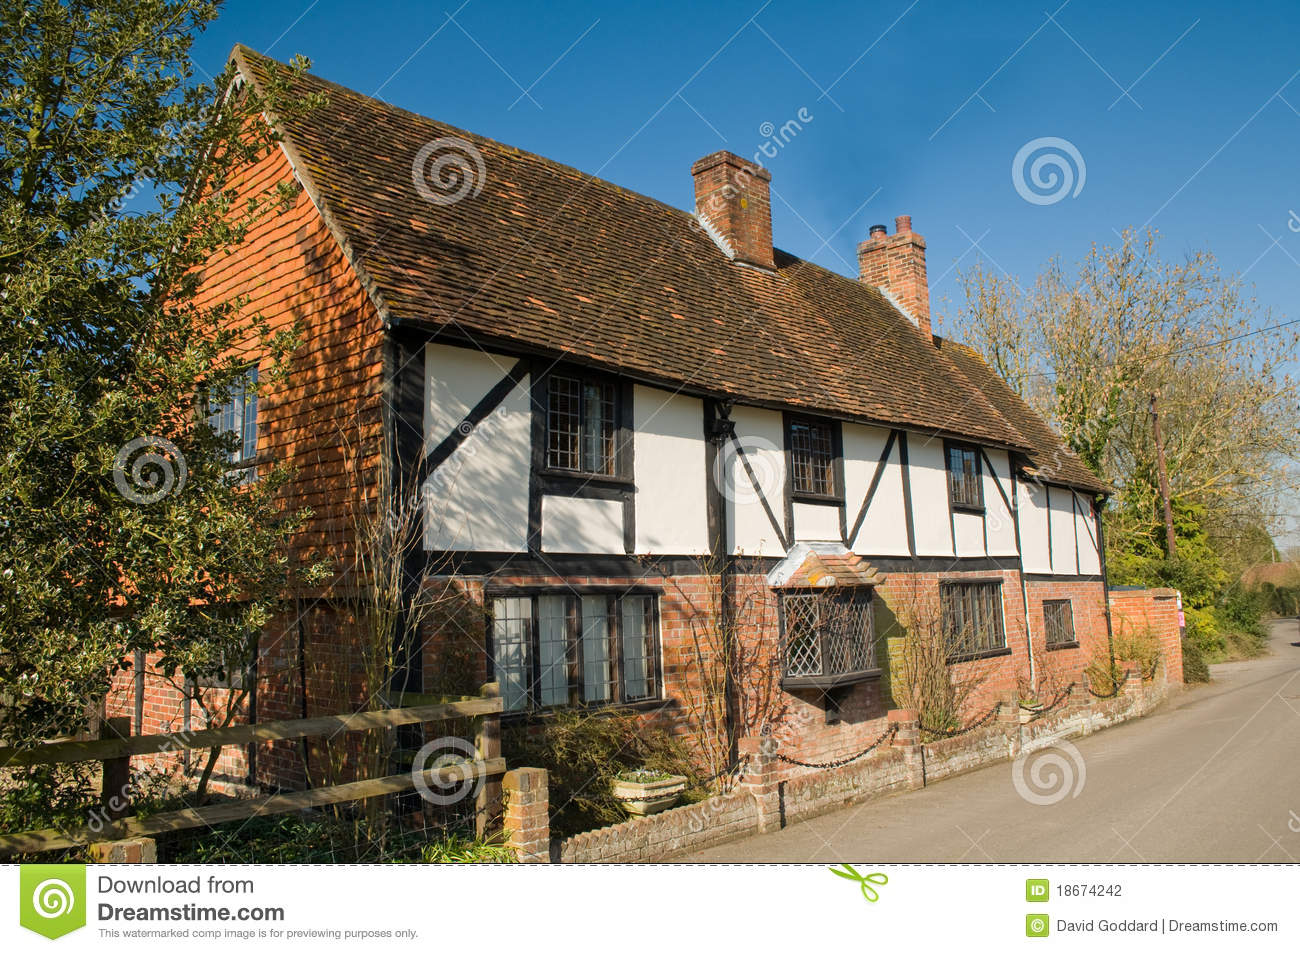 Maison de campagne anglaise photo stock image 18674242 for Cottage campagne anglaise